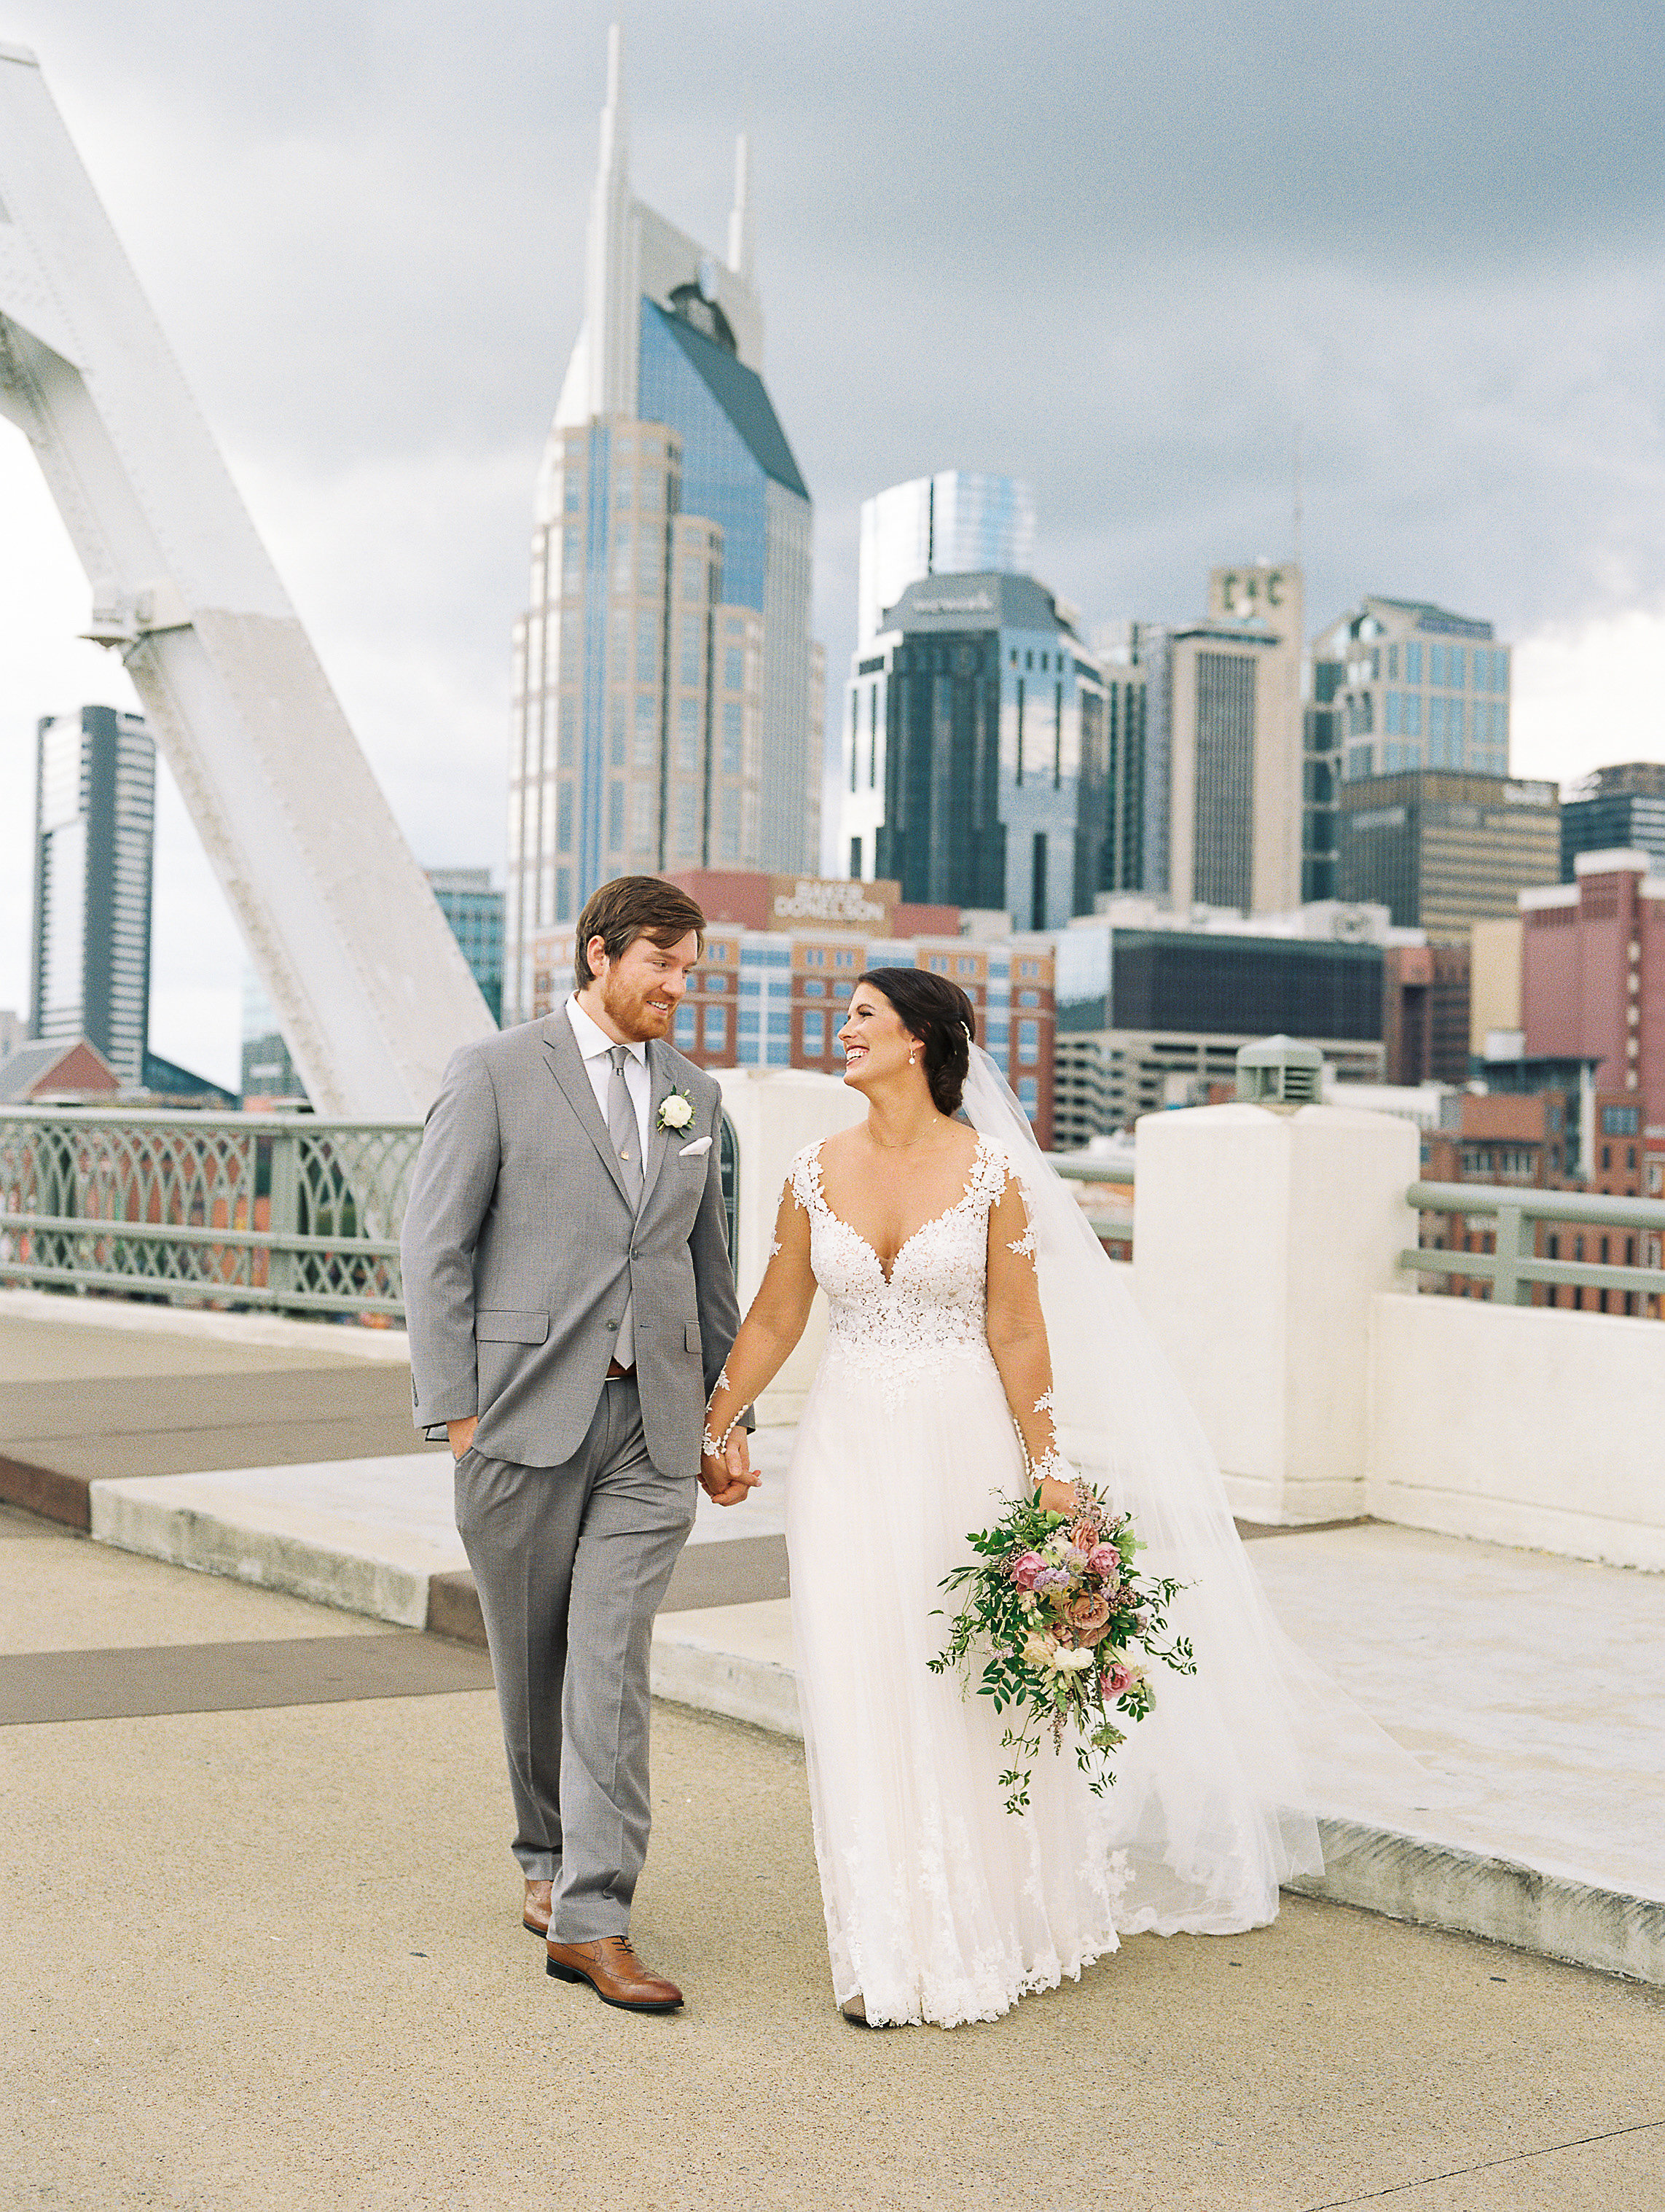 Lush greenery and lavender flowers // Newlywed portraits on the Shelby Bridge // Nashville Wedding Floral Design